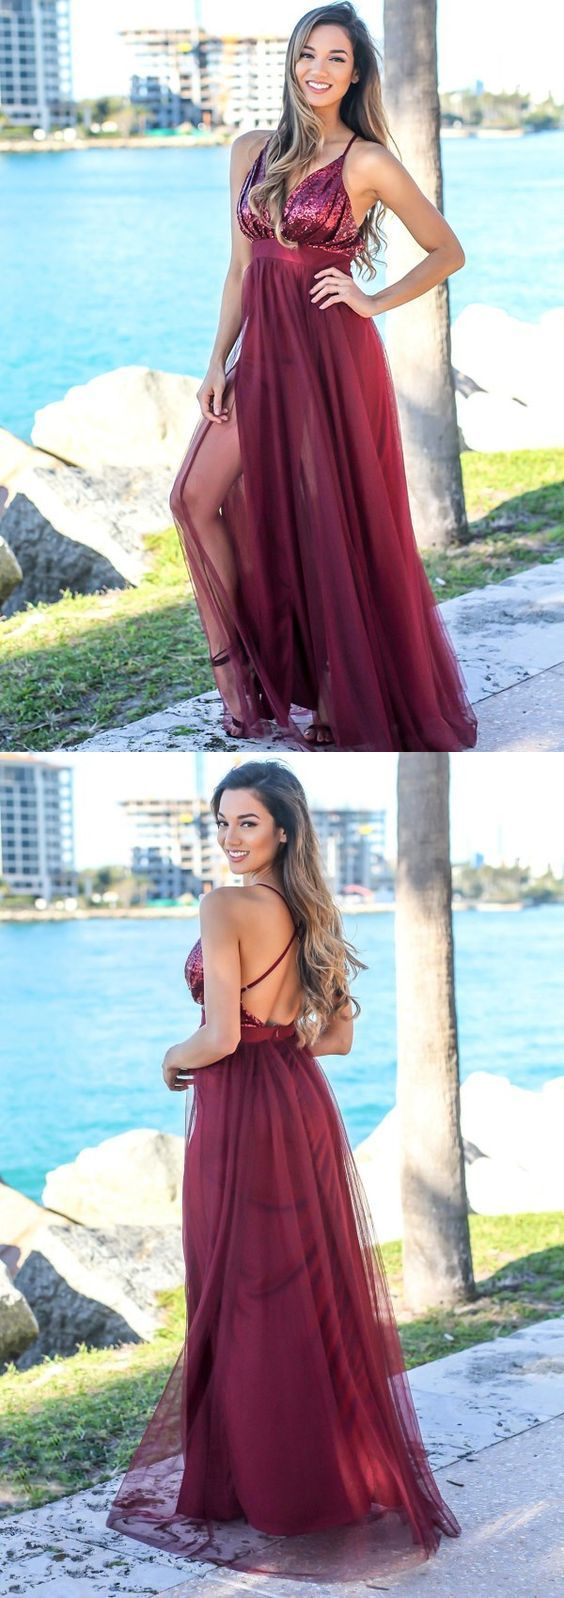 Spaghetti Straps Backless Prom Dresses, Sexy Deep V-Neck Sequin Prom Dresses,